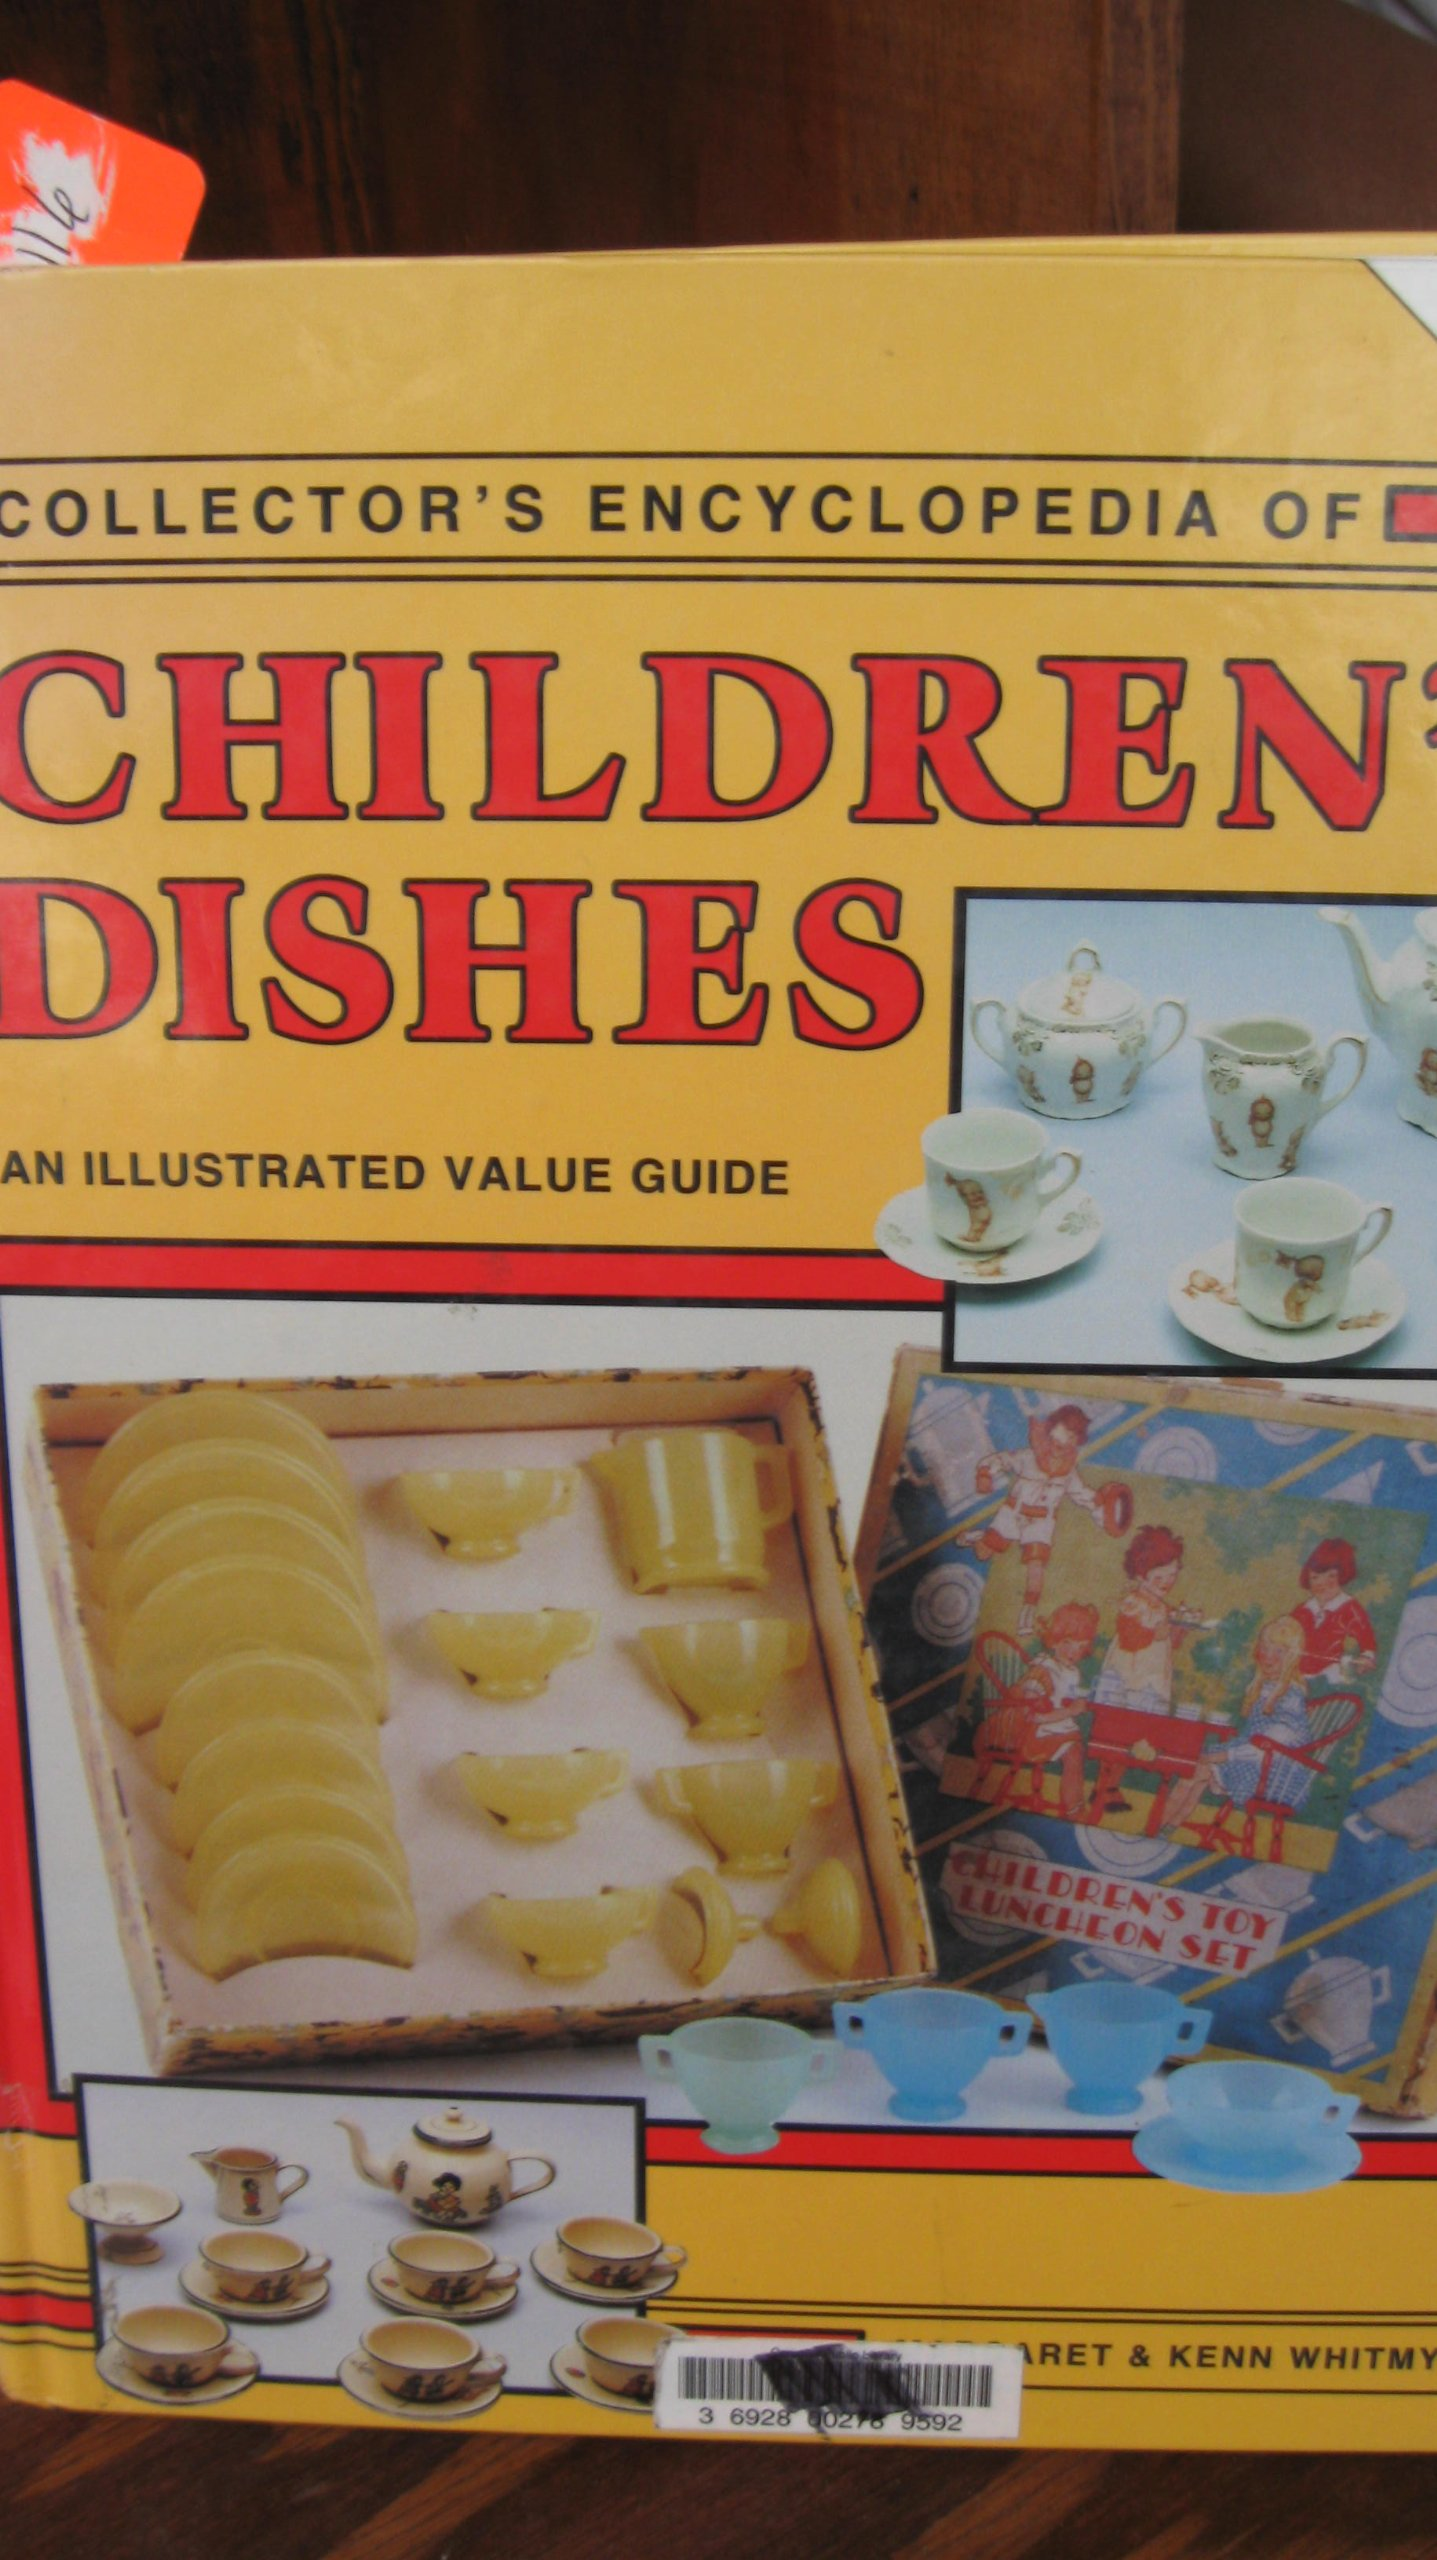 Collector's Encyclopedia of Children's Dishes: An Illustrated Value Guide